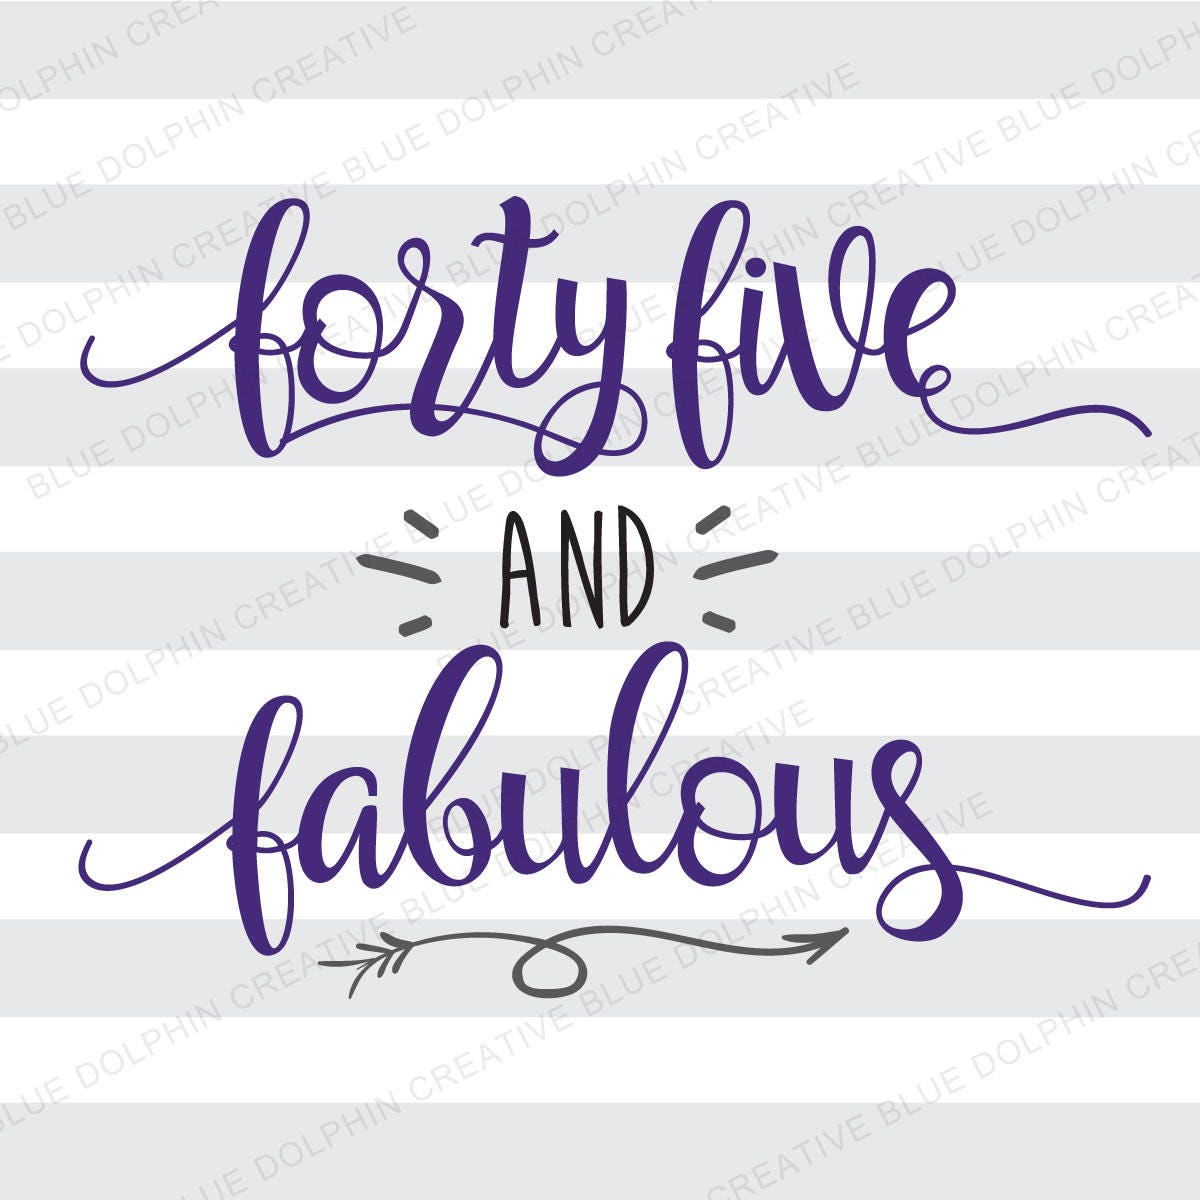 50 Fabulous Graphic: Forty Five And Fabulous SVG Png Pdf Jpg Ai Dxf, Birthday